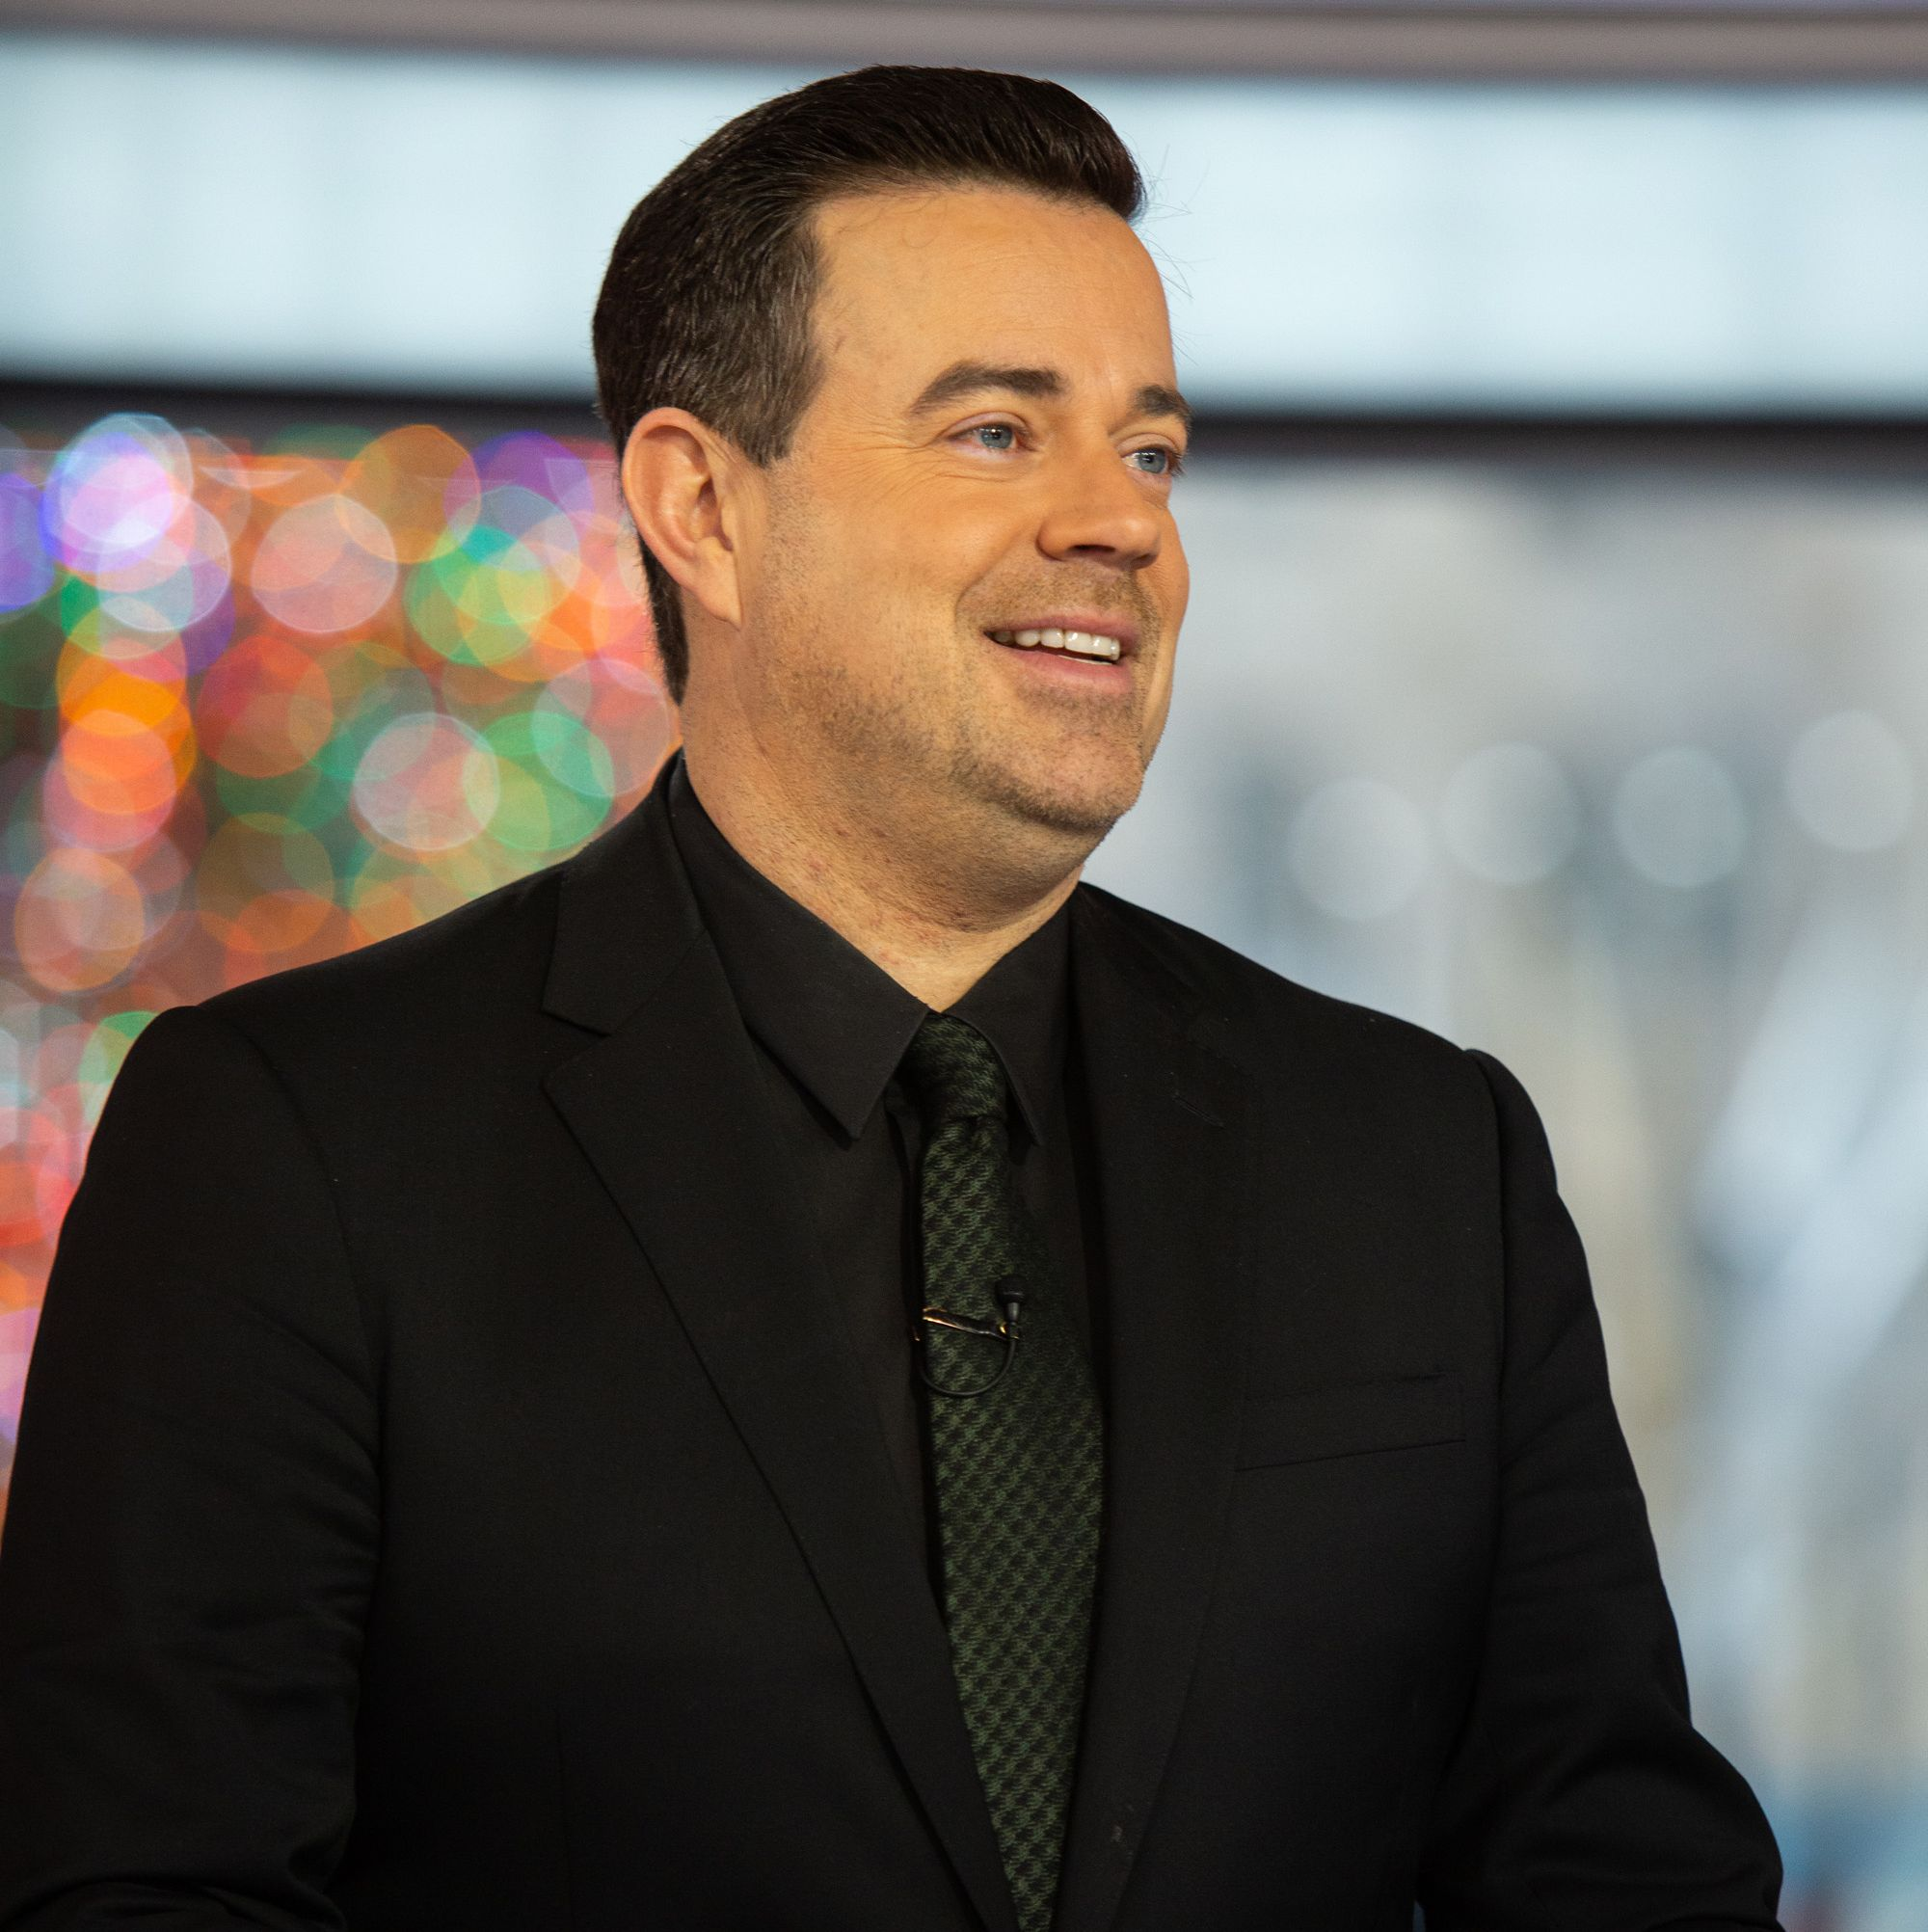 'The Voice' Host Carson Daly Gets Real About His Recent Weight Gain in Twitter Post